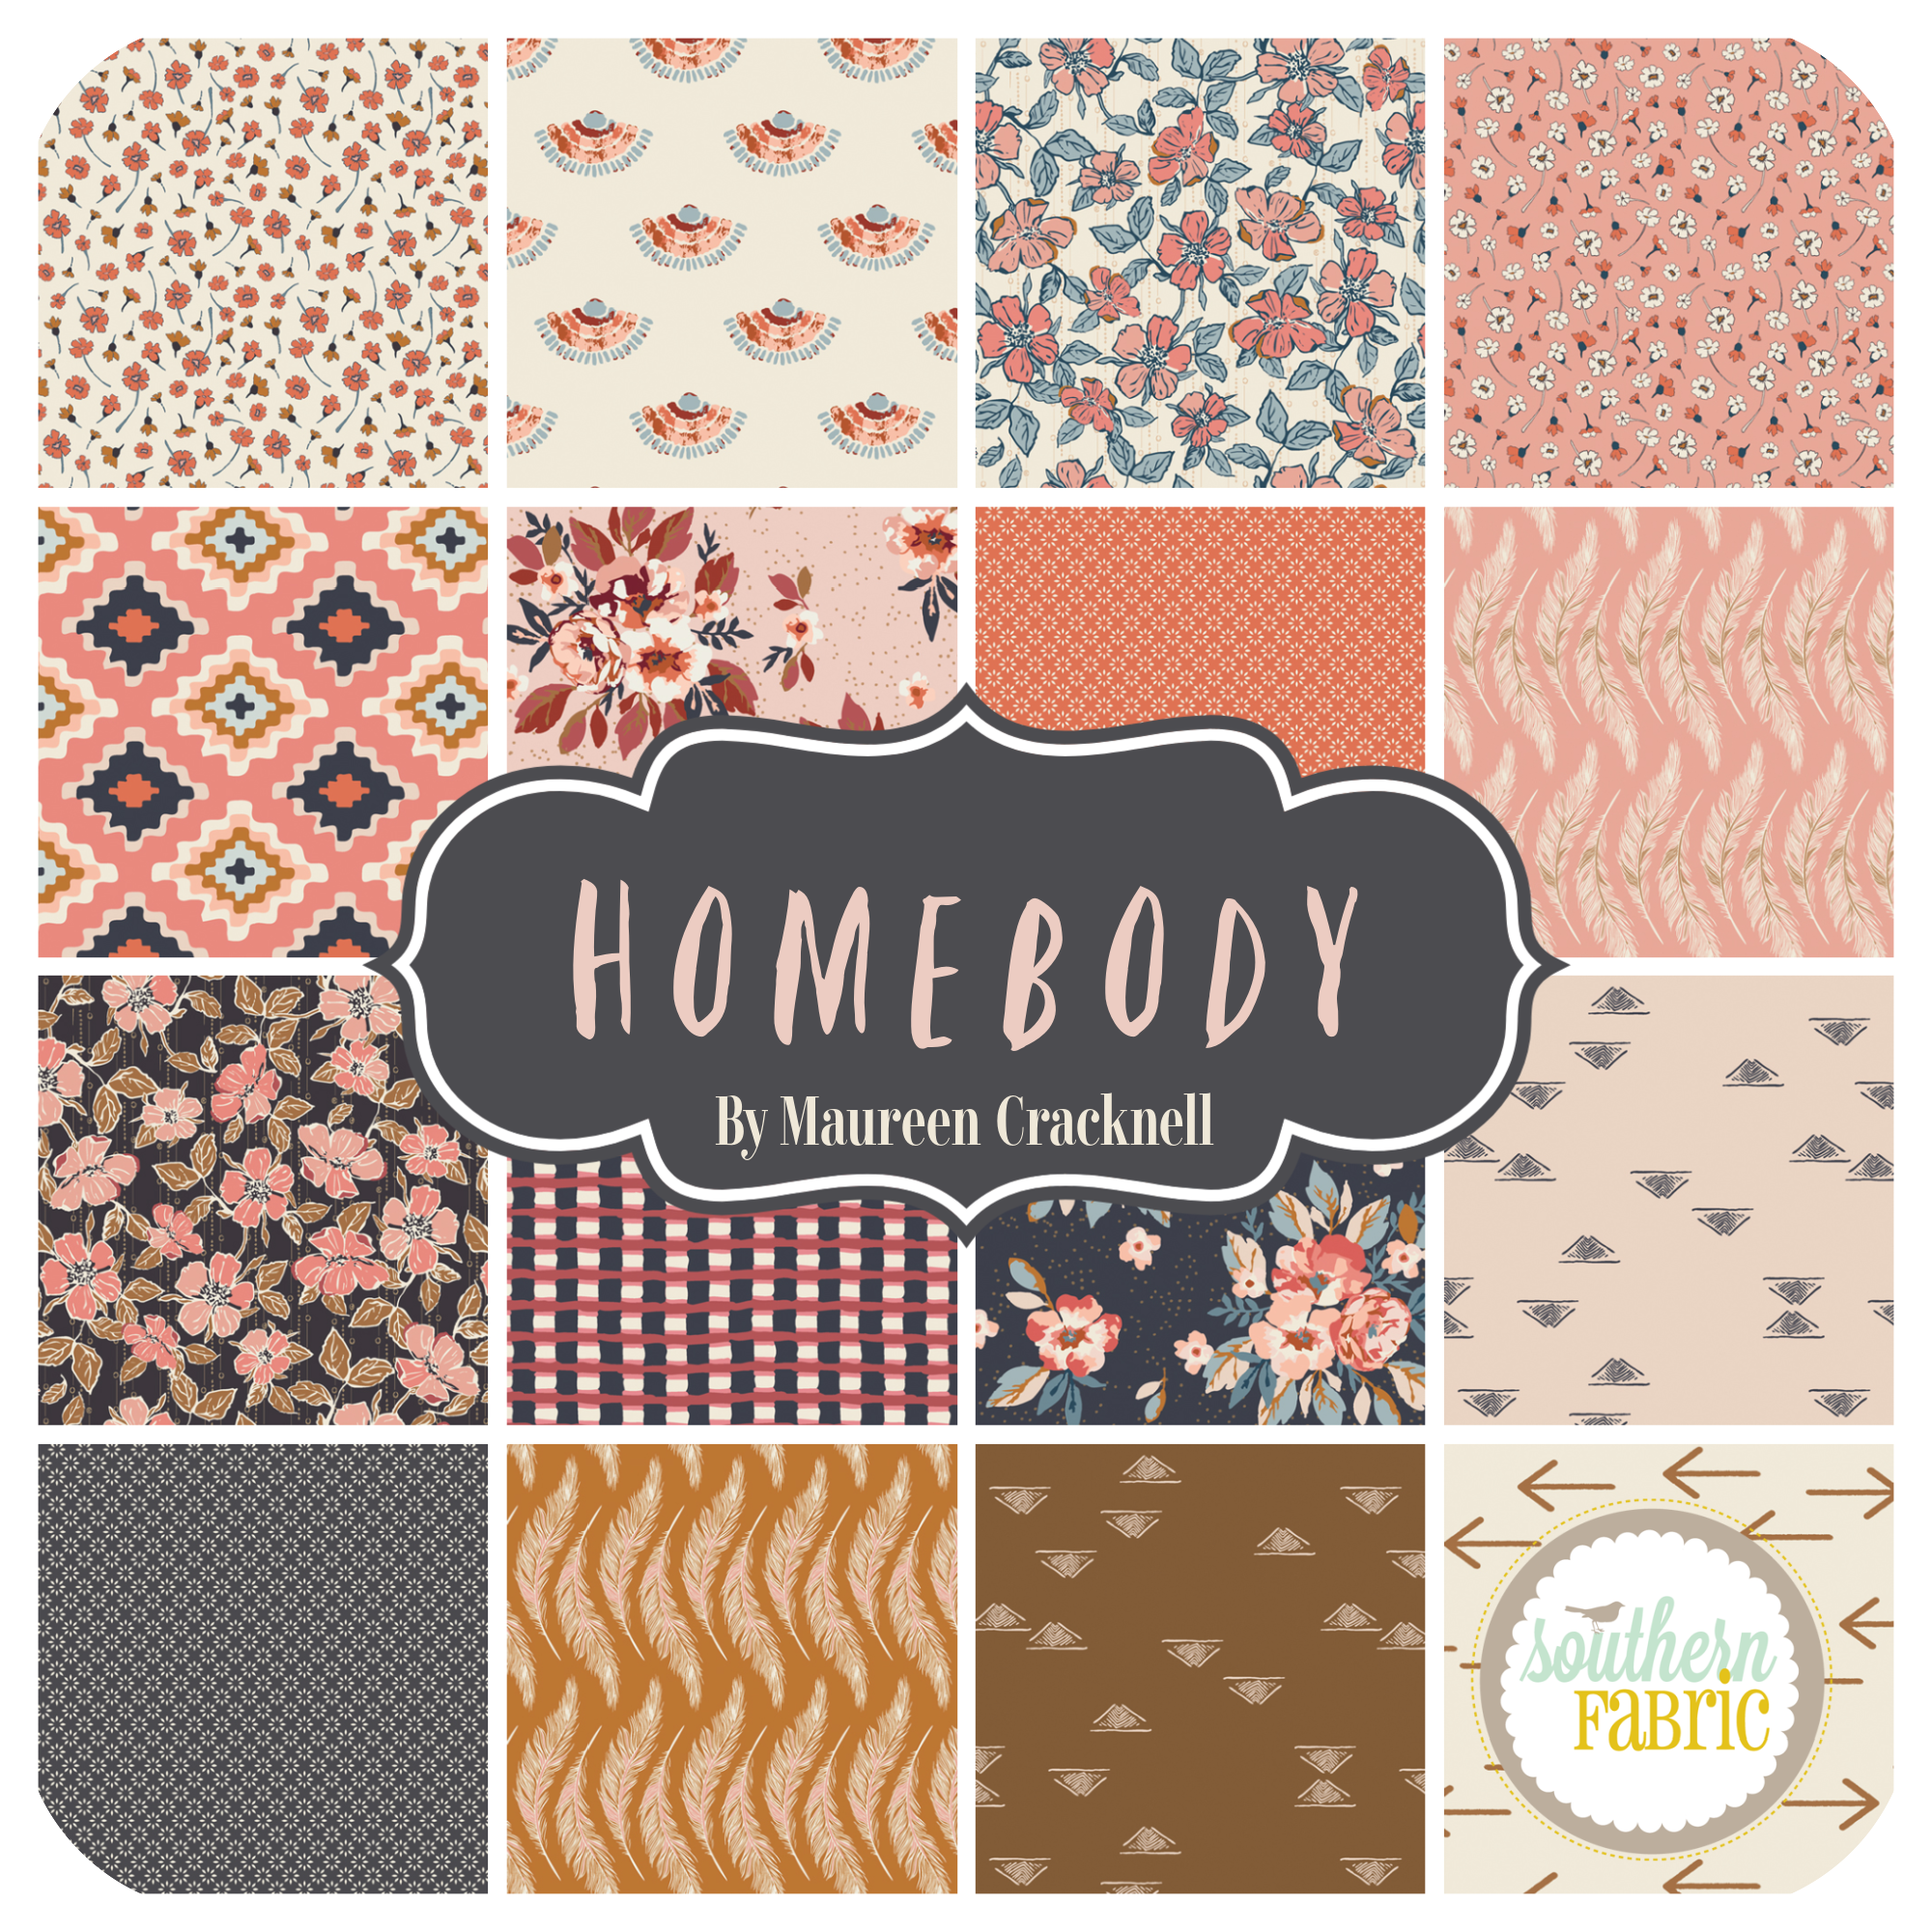 Homebody by Maureen Cracknell